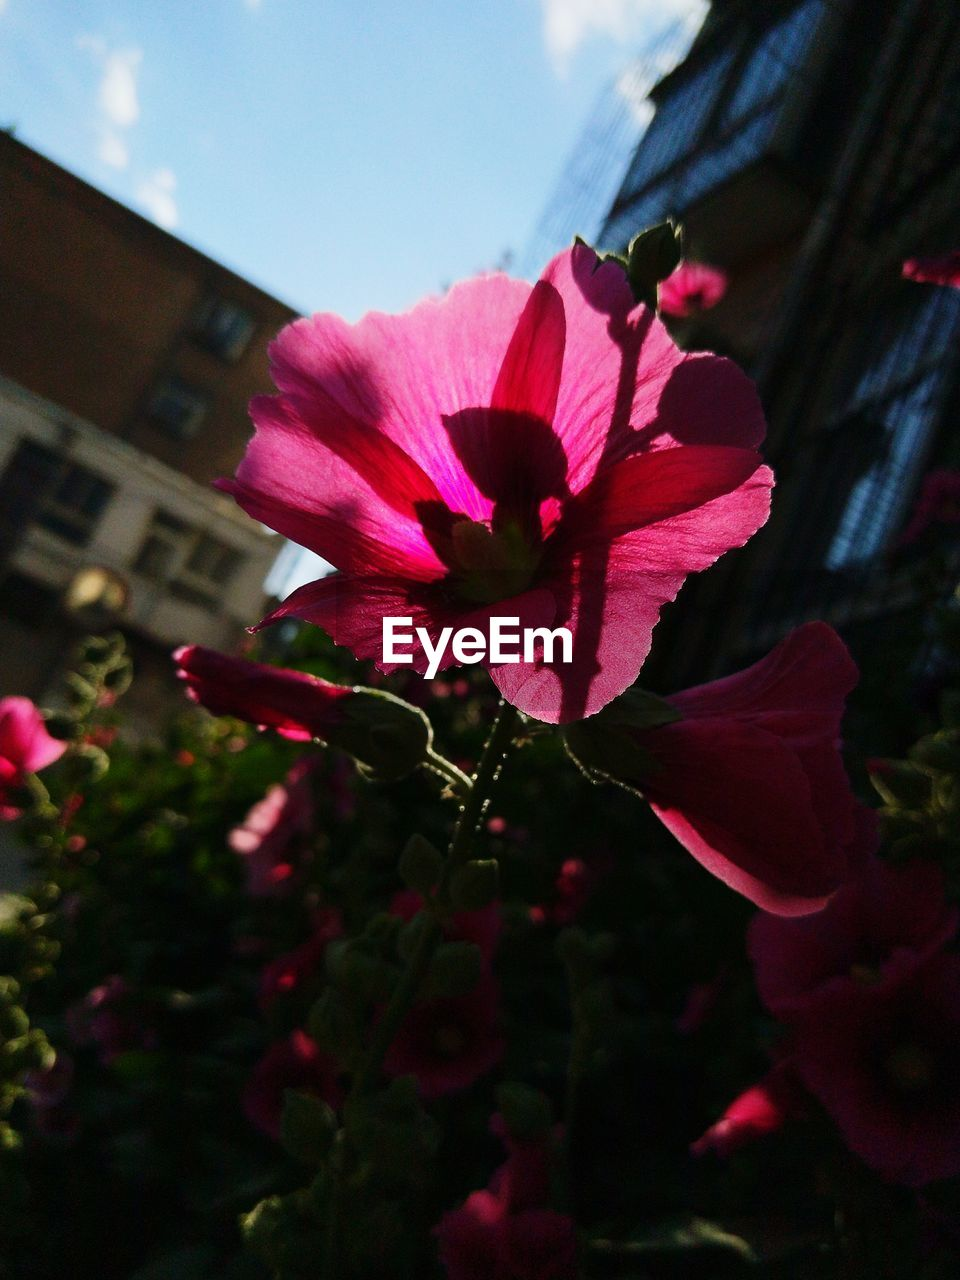 flower, flowering plant, plant, petal, beauty in nature, pink color, freshness, vulnerability, fragility, growth, close-up, inflorescence, flower head, nature, focus on foreground, no people, red, day, architecture, outdoors